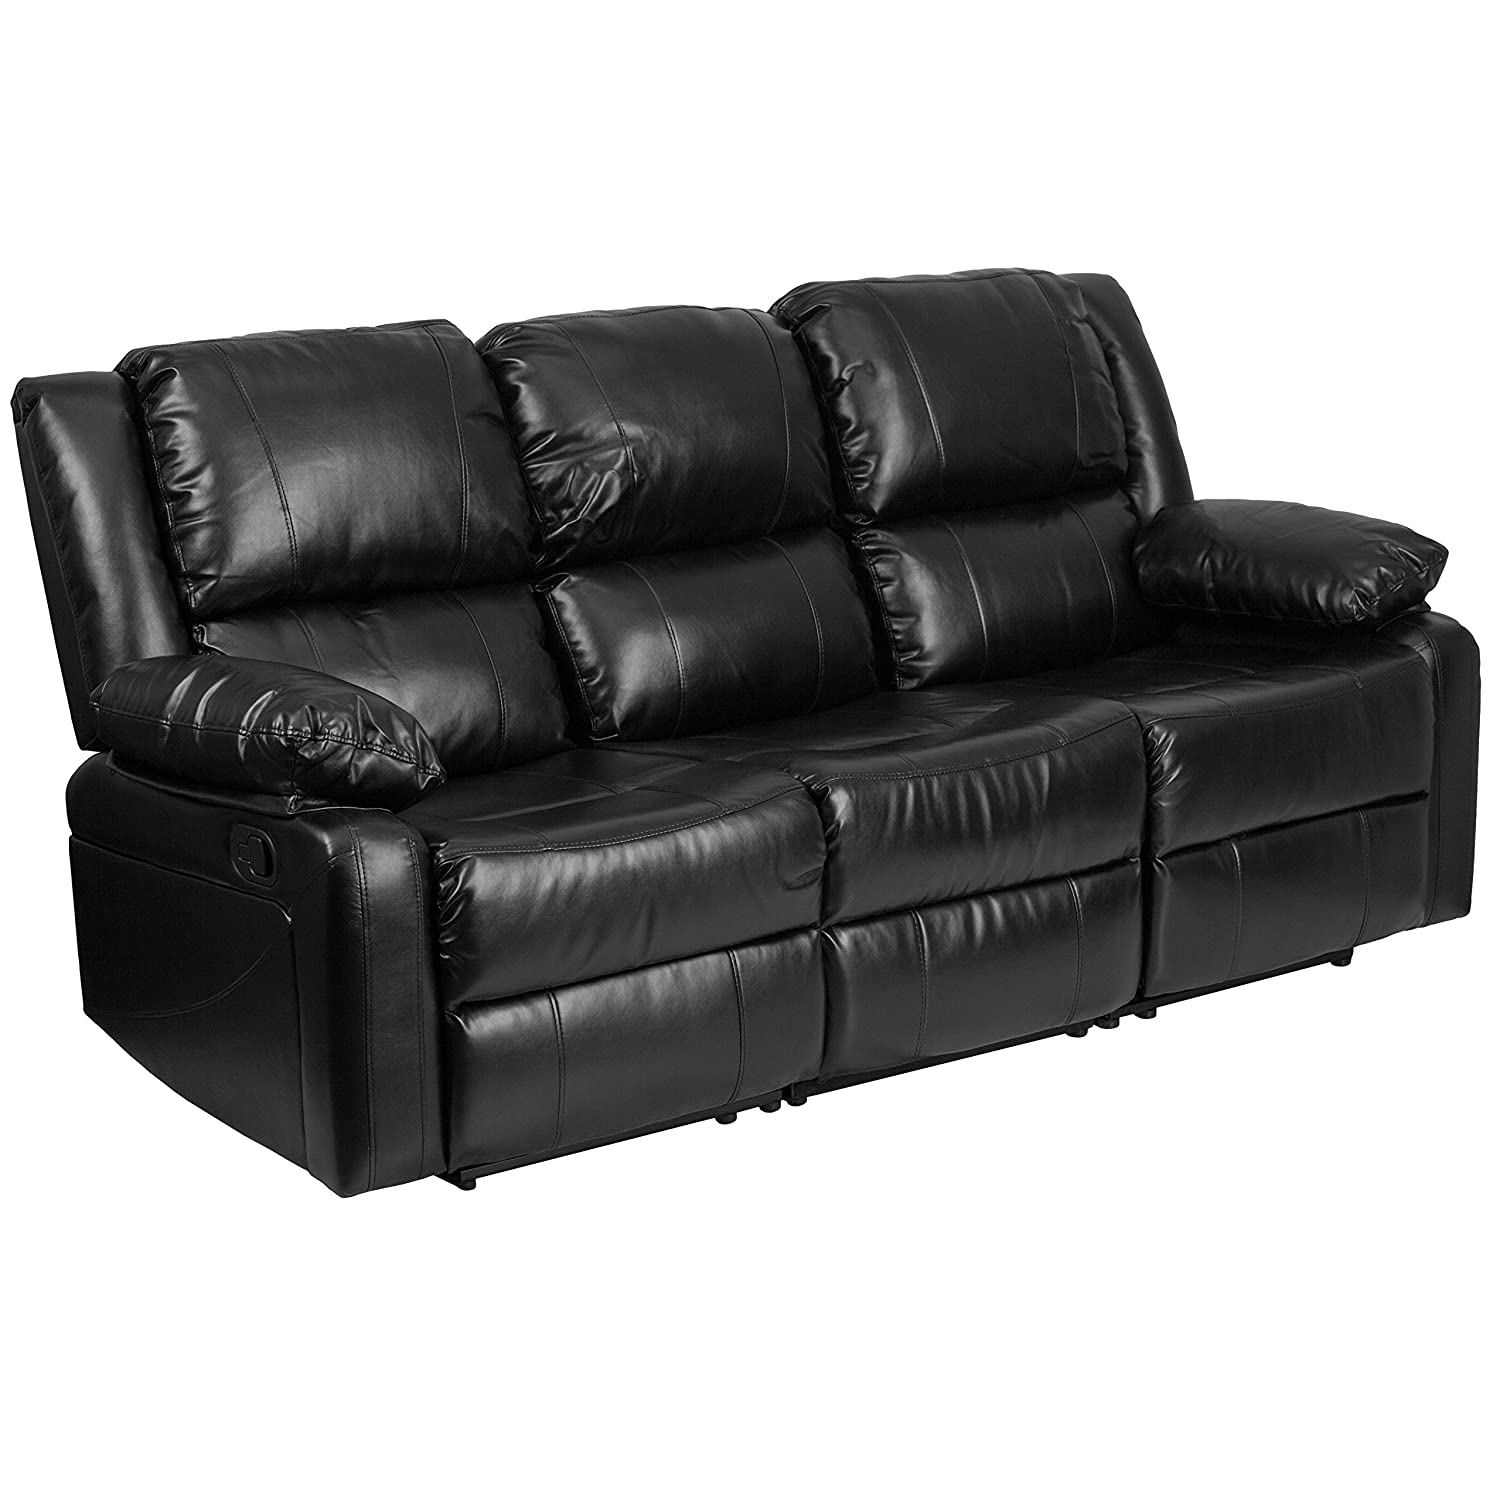 Amazon.com Flash Furniture Harmony Series Black Leather Sofa with Two Built-In Recliners Kitchen u0026 Dining  sc 1 st  Amazon.com & Amazon.com: Flash Furniture Harmony Series Black Leather Sofa with ... islam-shia.org